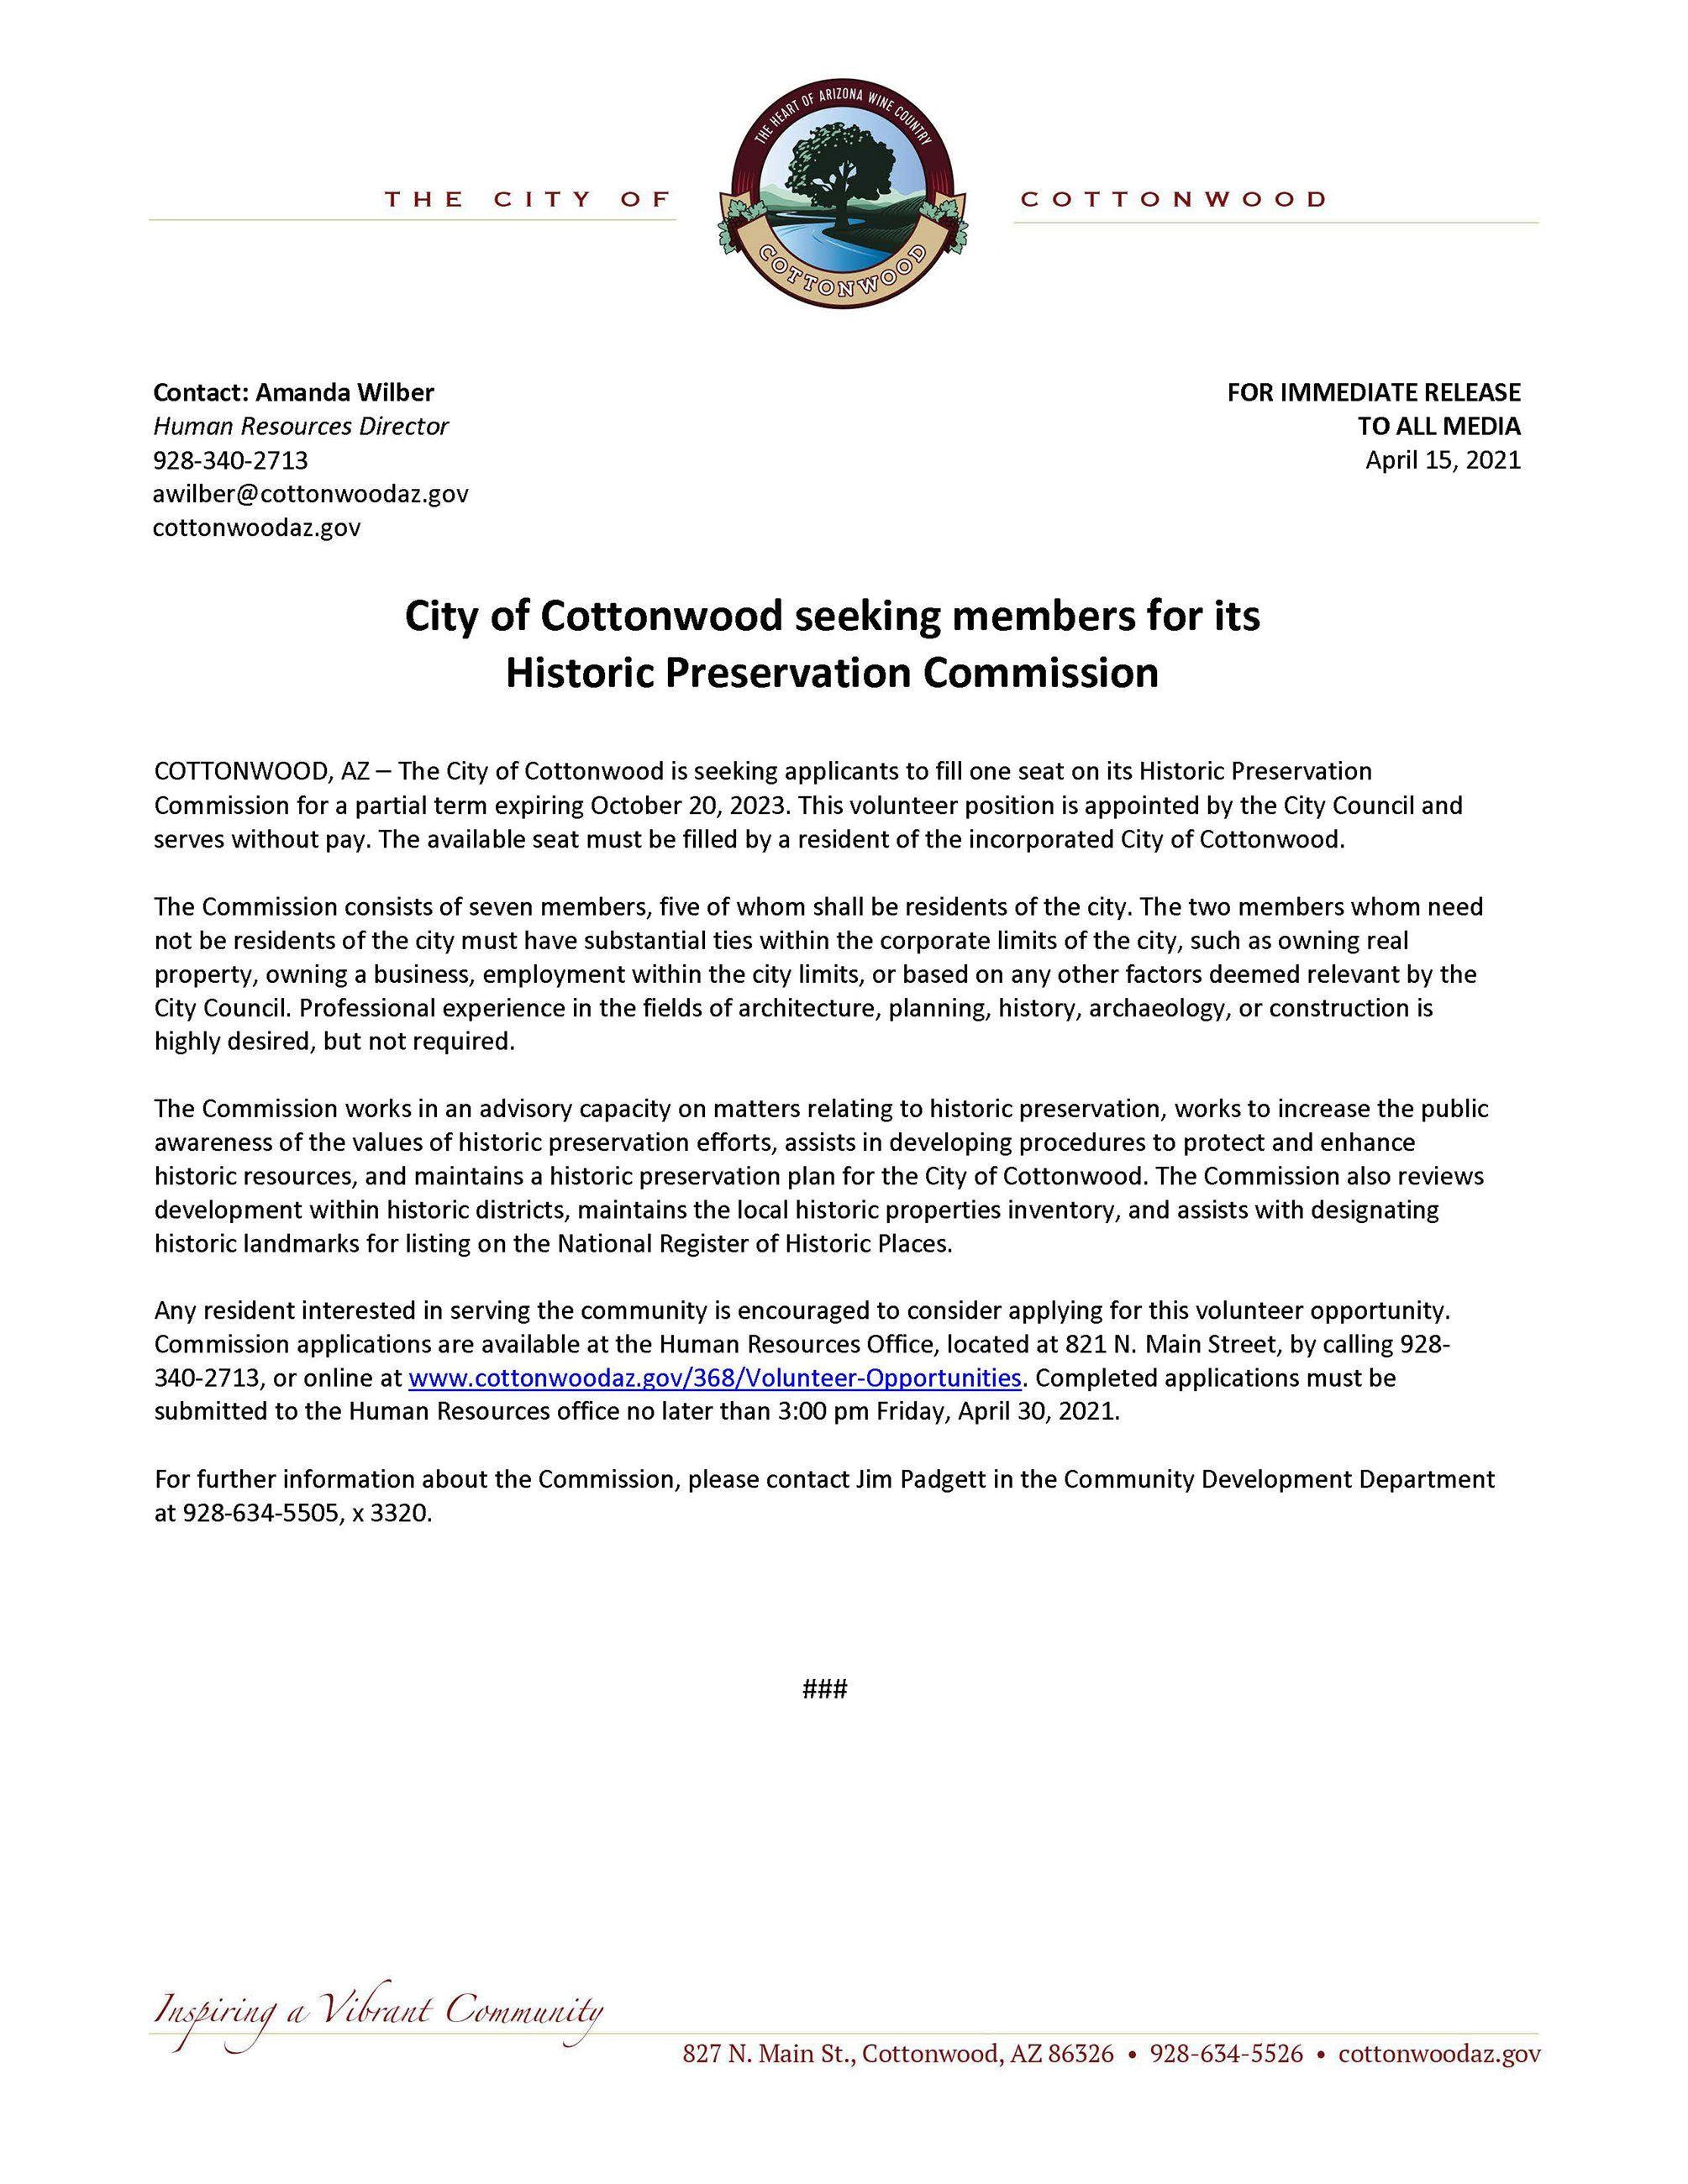 PRESS RELEASE - City of Cottonwood seeking members for its Historic Preservation Commission